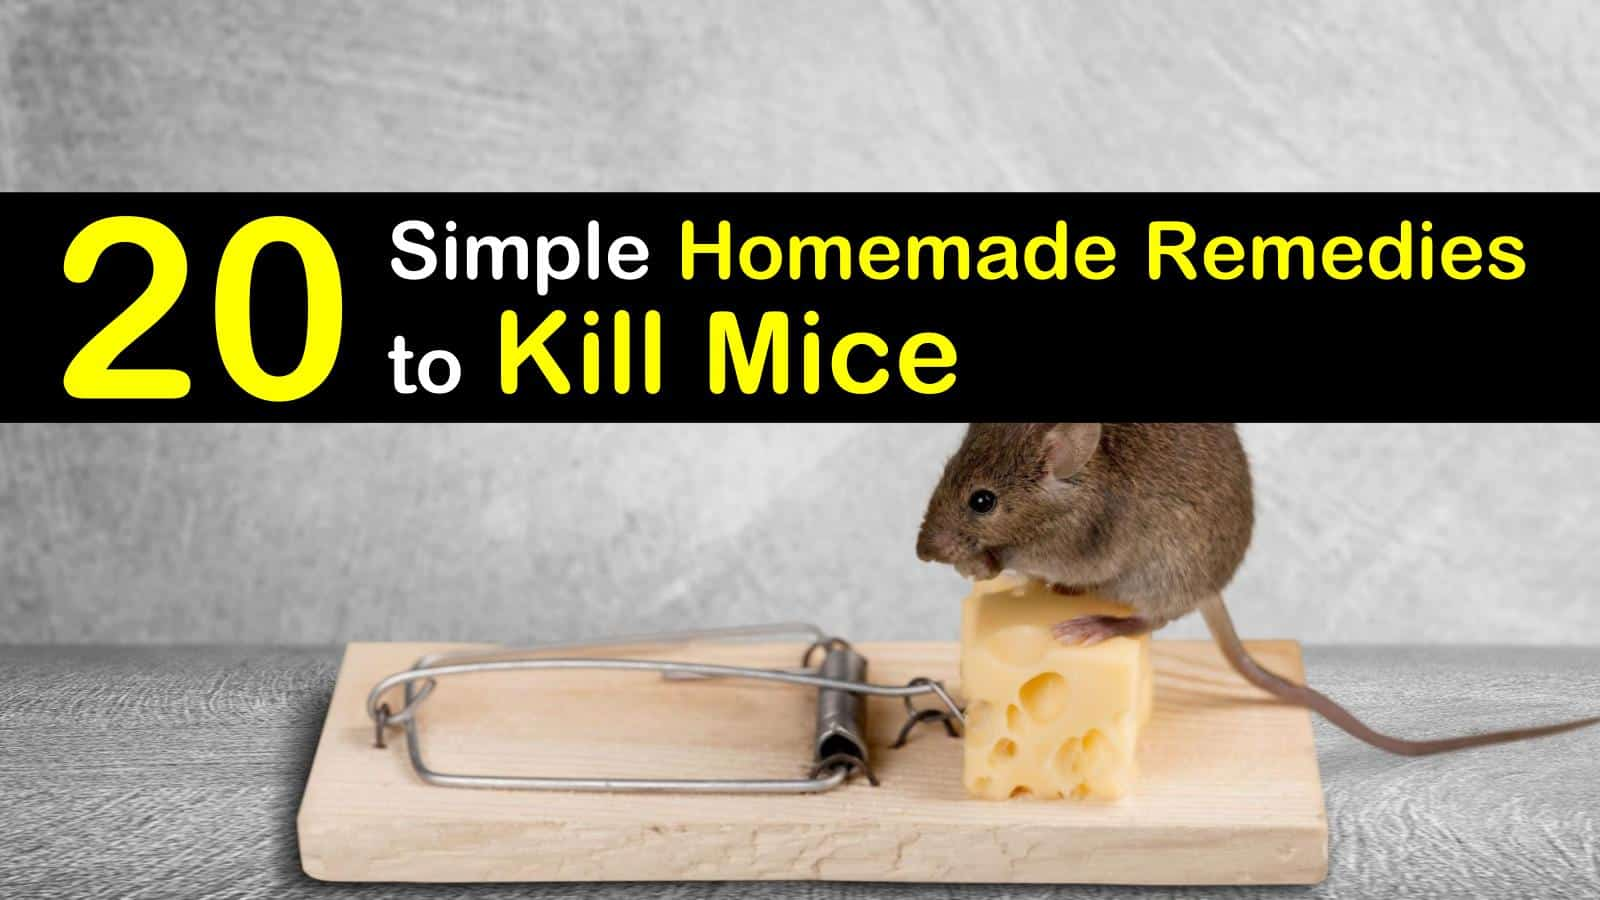 20 Simple Homemade Remedies to Kill Mice titleimg1